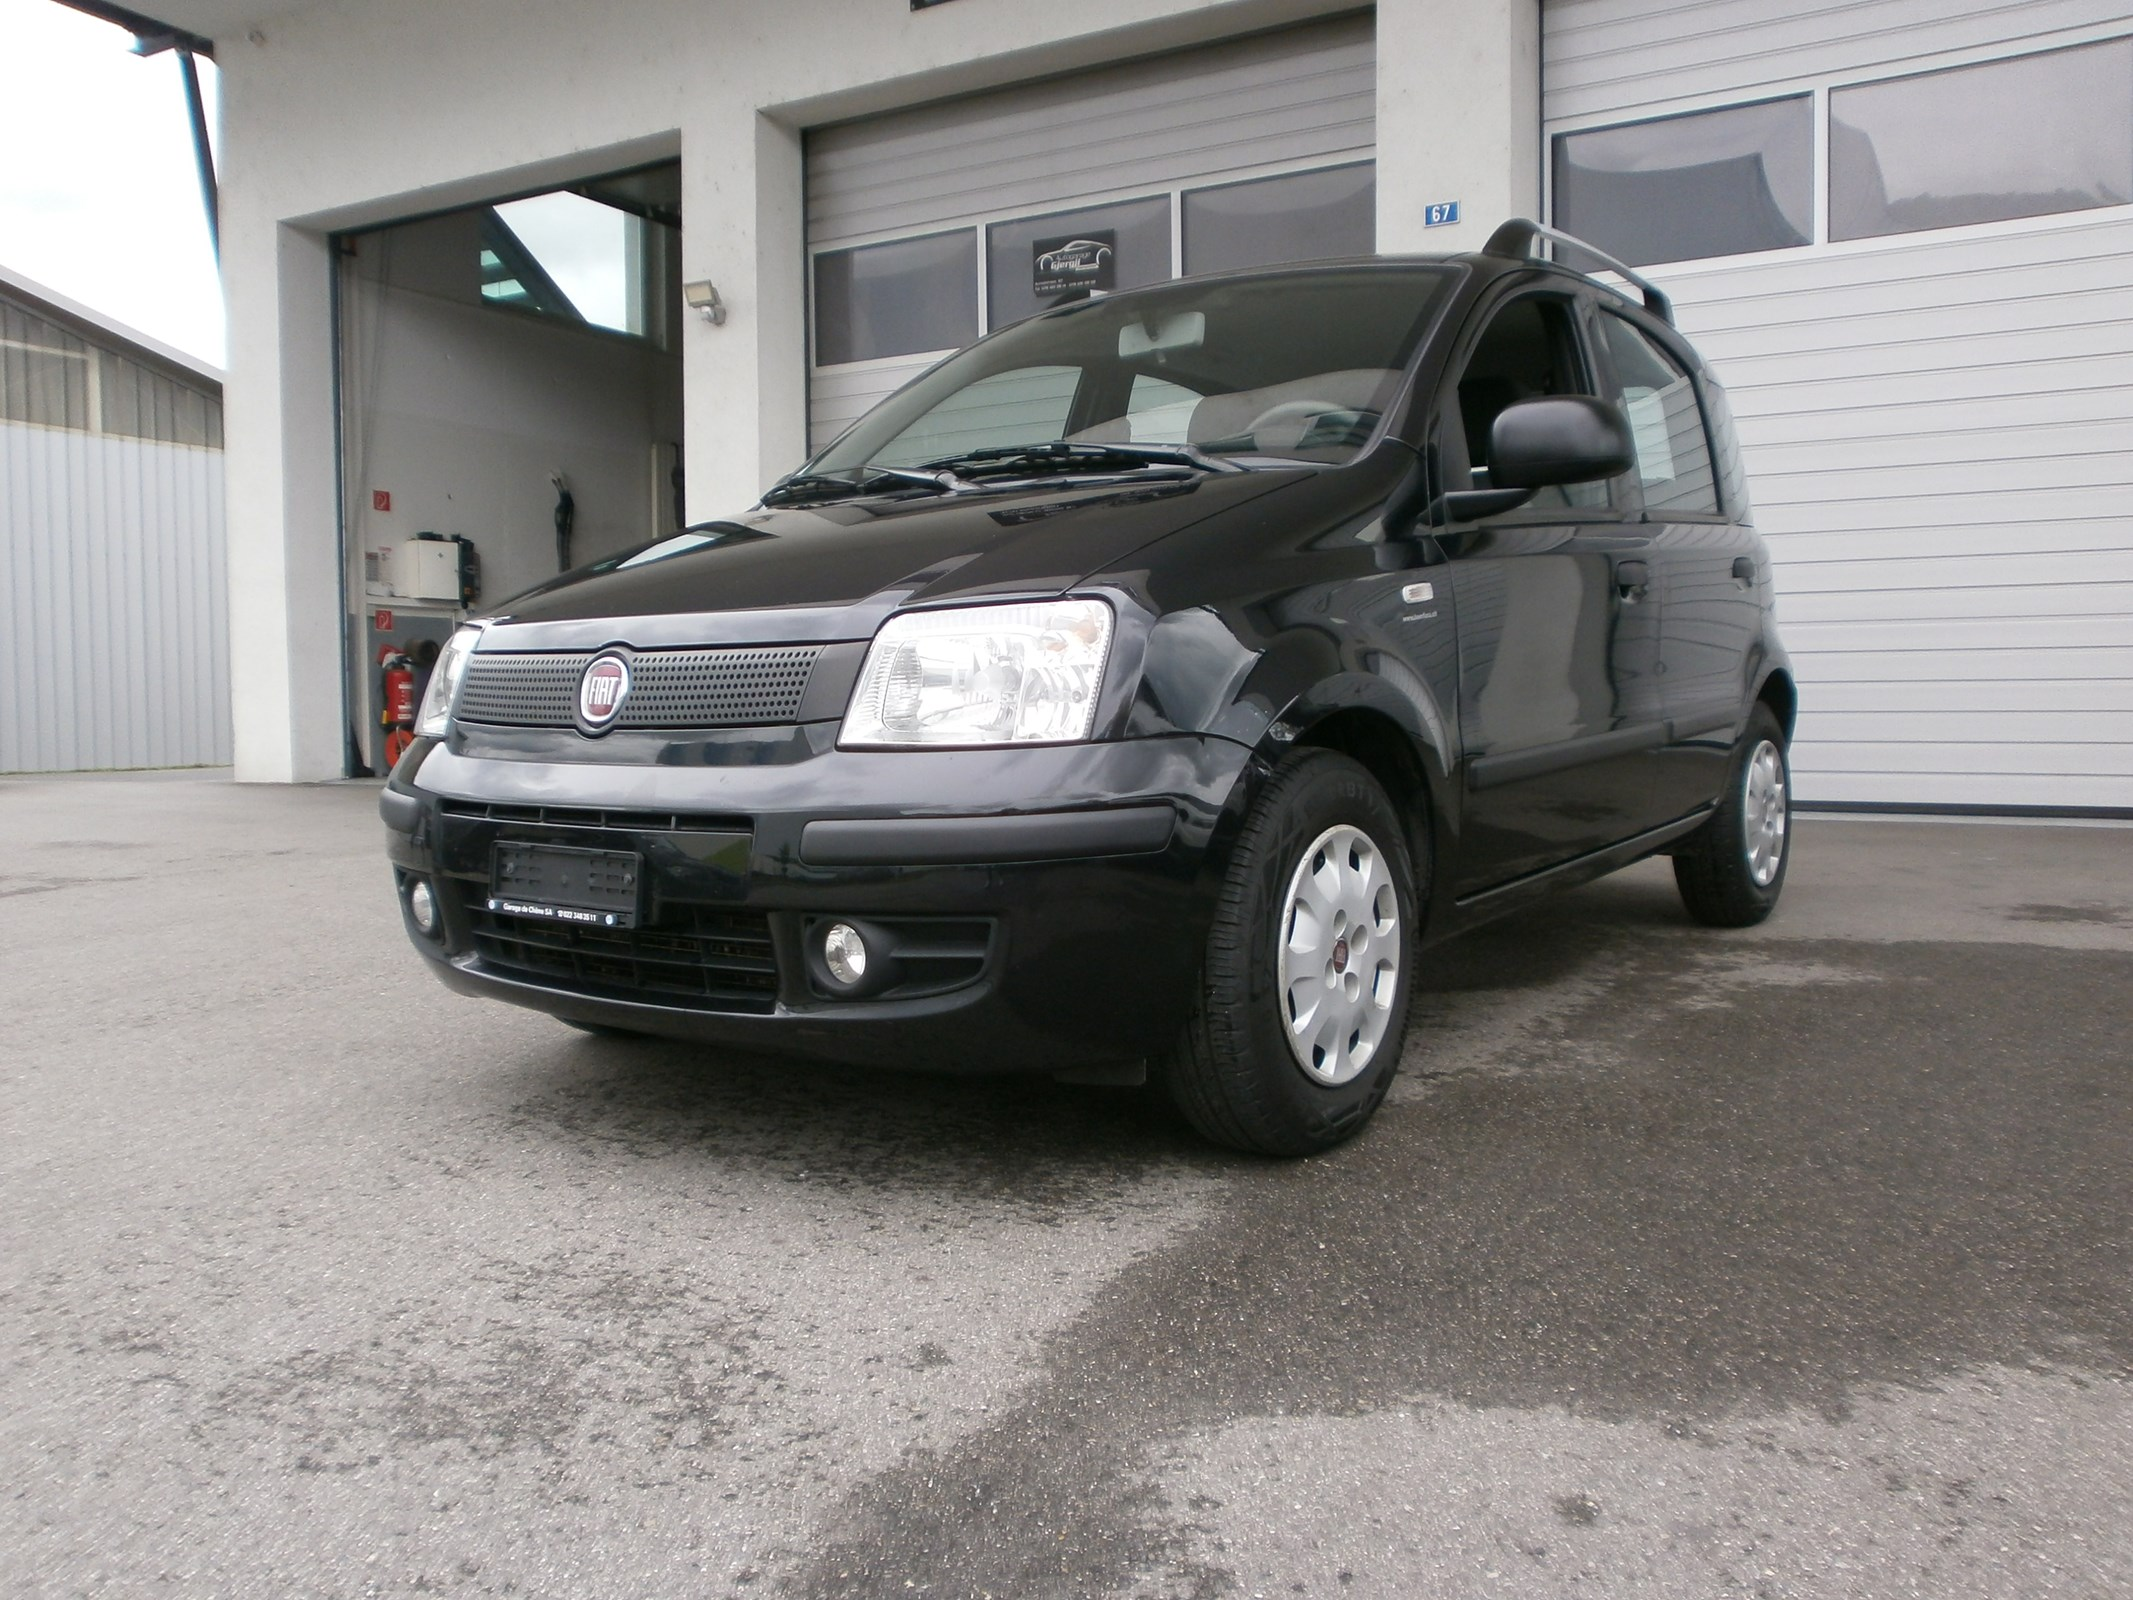 saloon Fiat Panda 1.2 Active MyLife